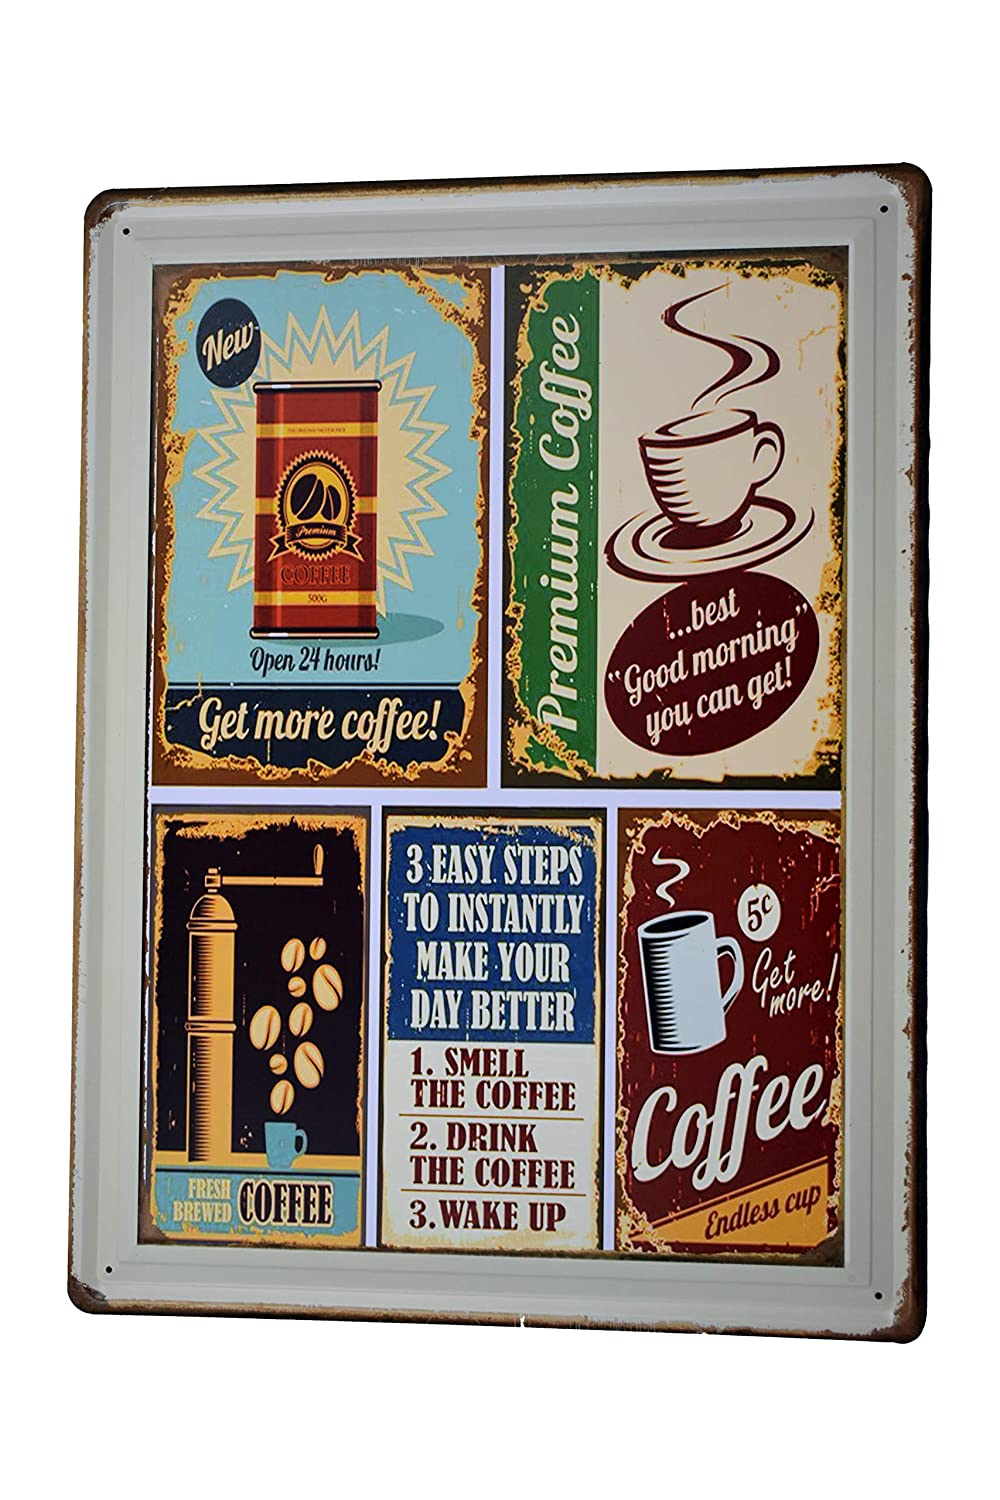 Amazon.com: H&K Premium Coffee Retro Metal Tin Sign Posters Kitchen Café Diner Restaurant Wall Decor 12X16-Inch: Home & Kitchen